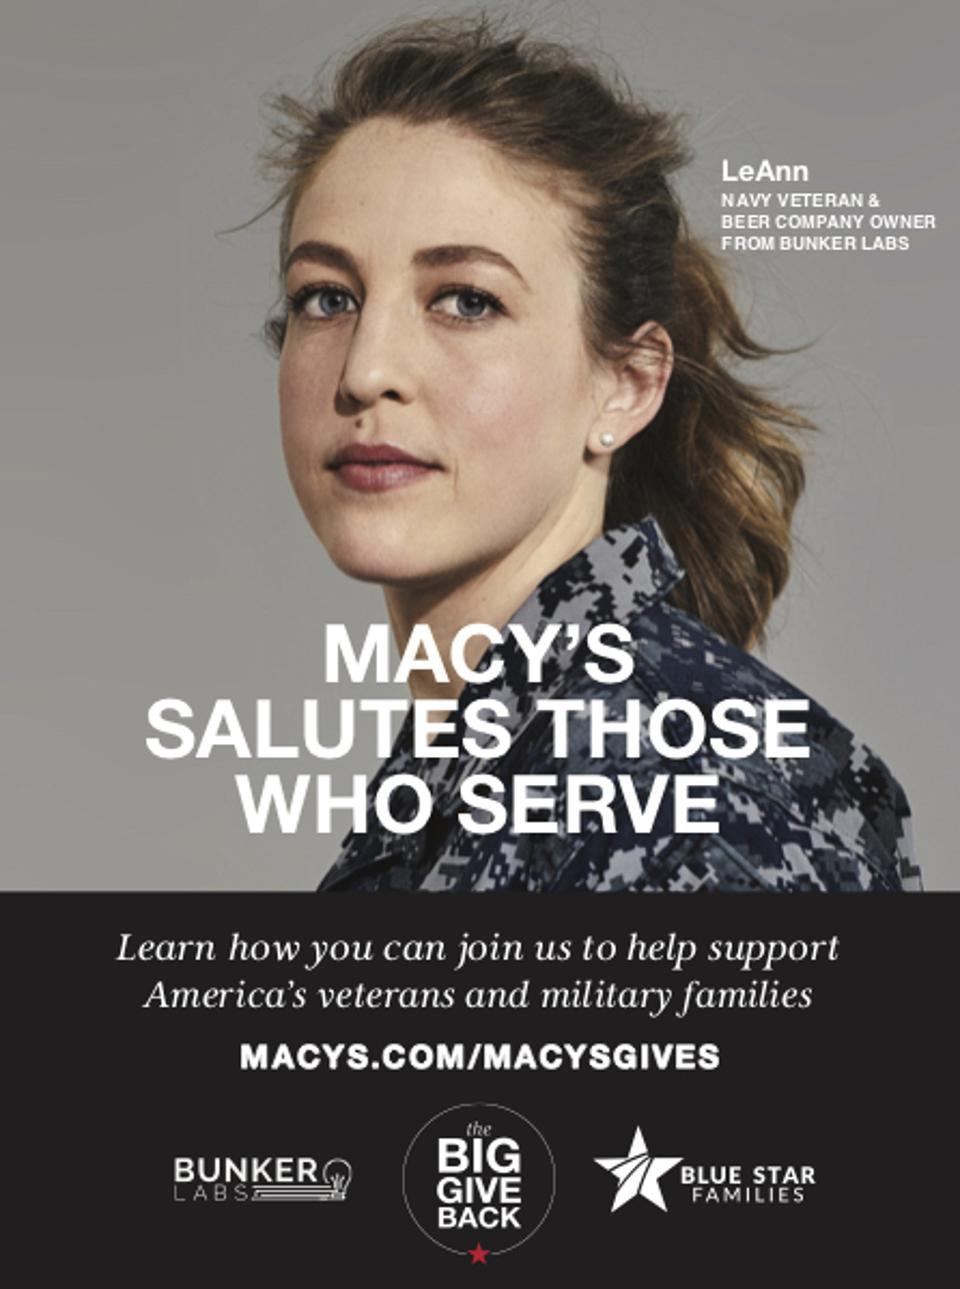 Macy's Salutes Those Who Serve